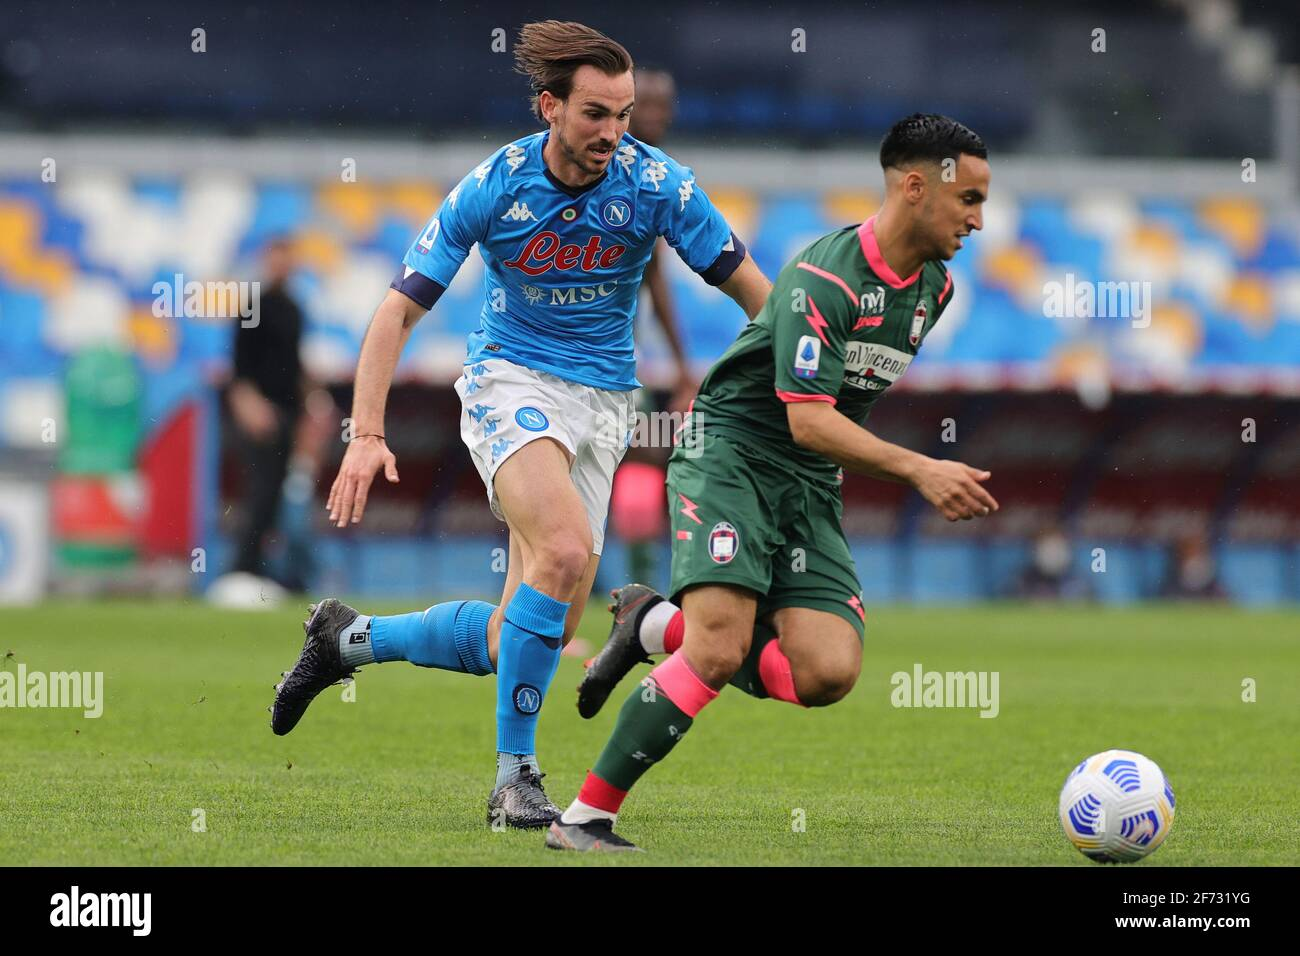 Ounas High Resolution Stock Photography and Images - Alamy